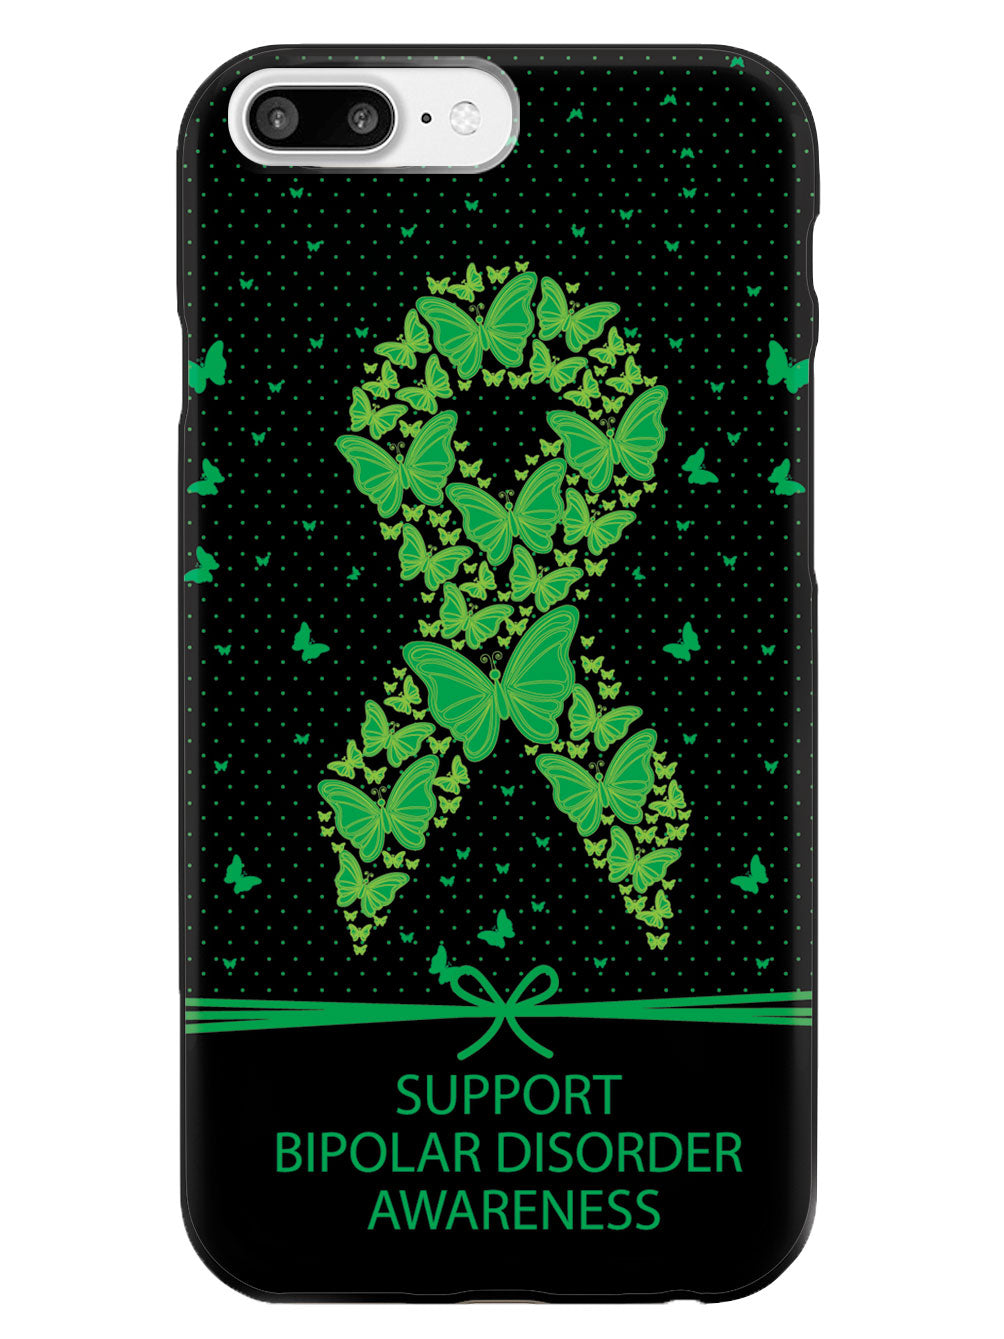 Bipolar Disorder Awareness - Black Case